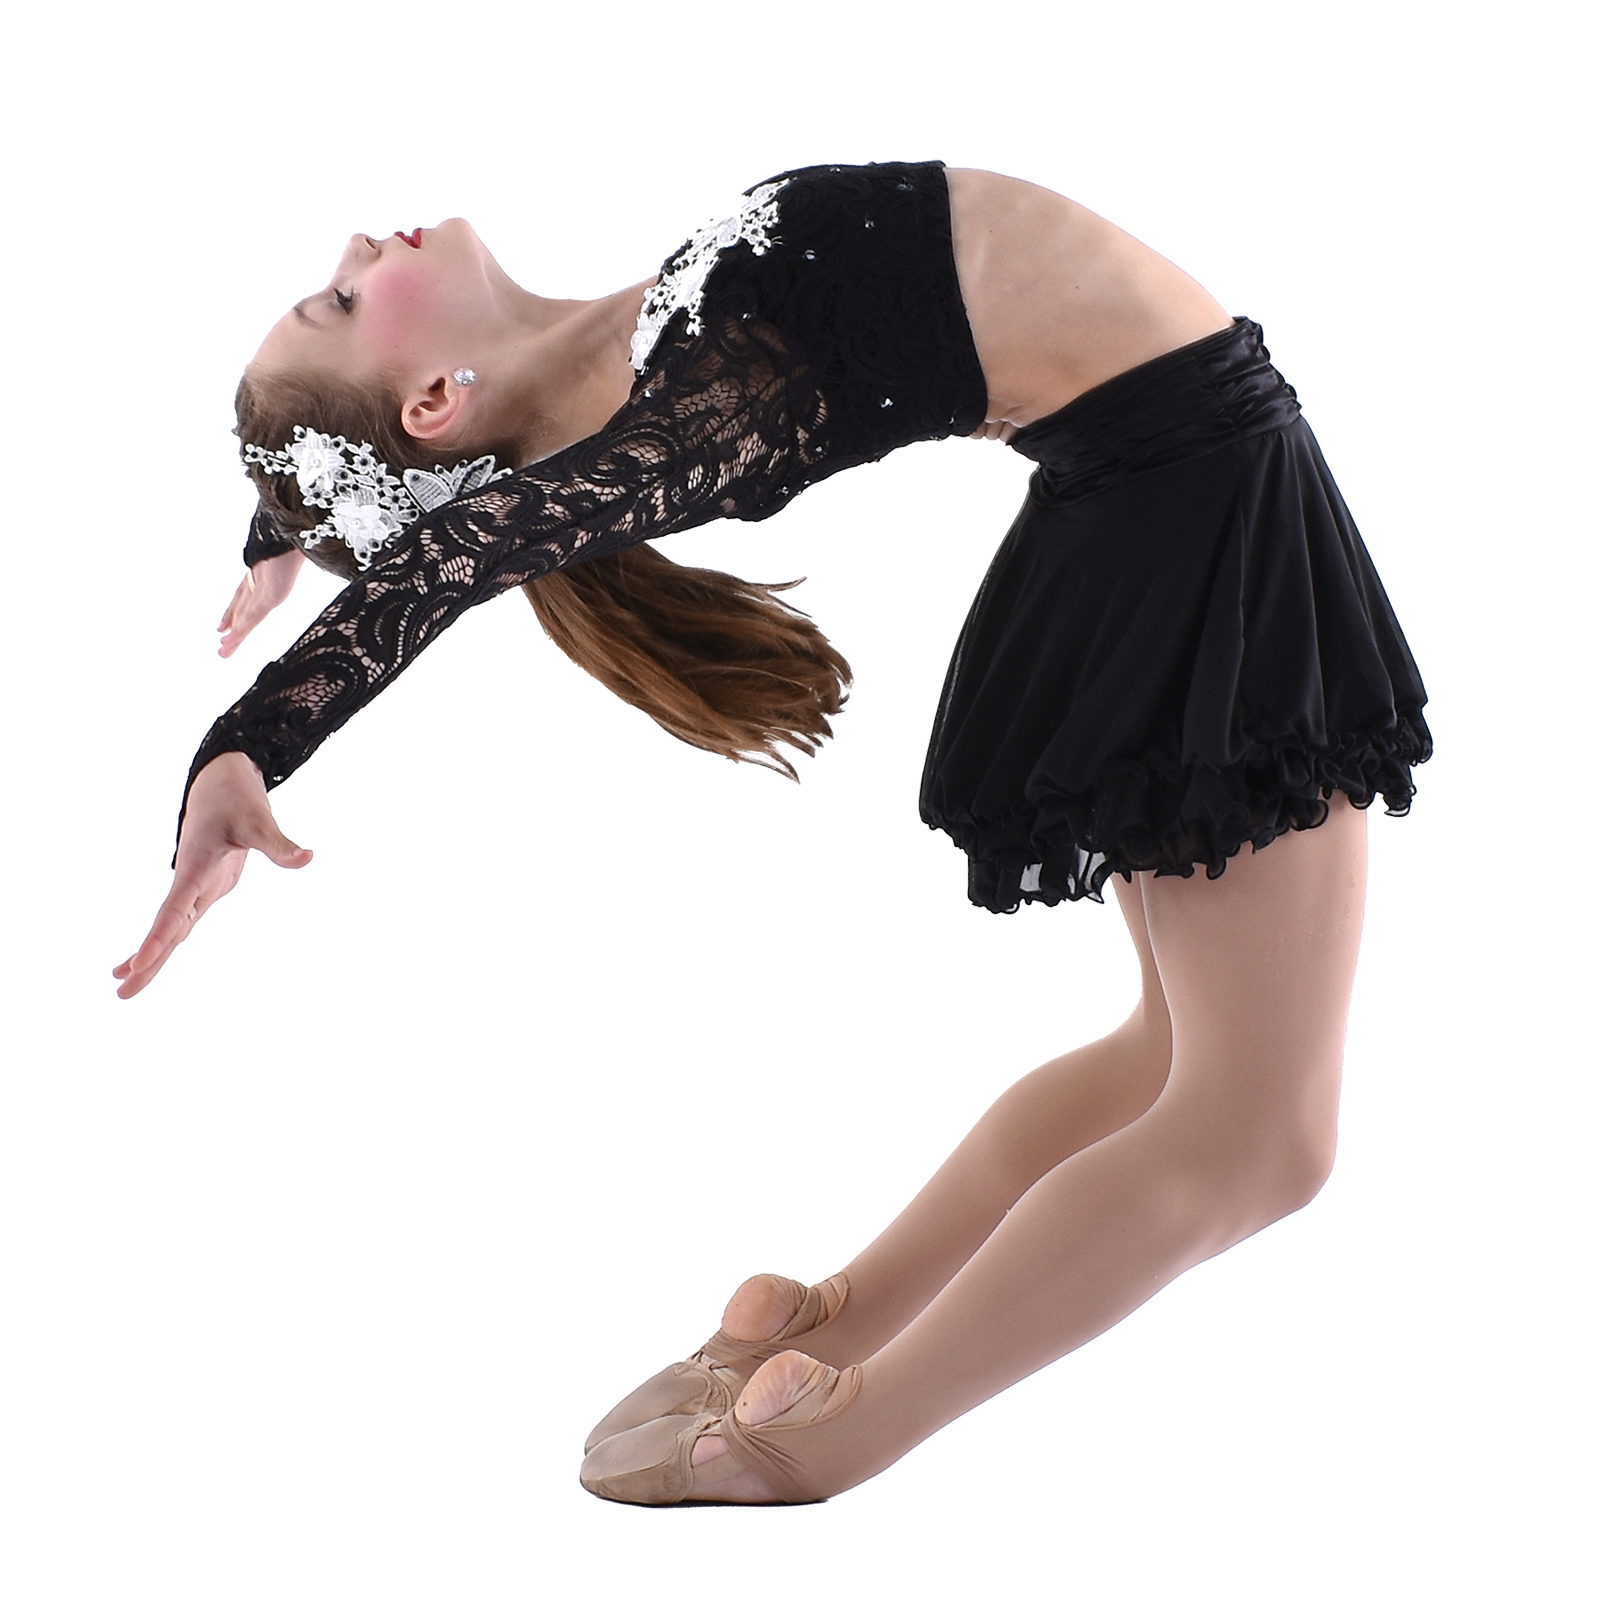 teenage dancer in dramatic dance pose